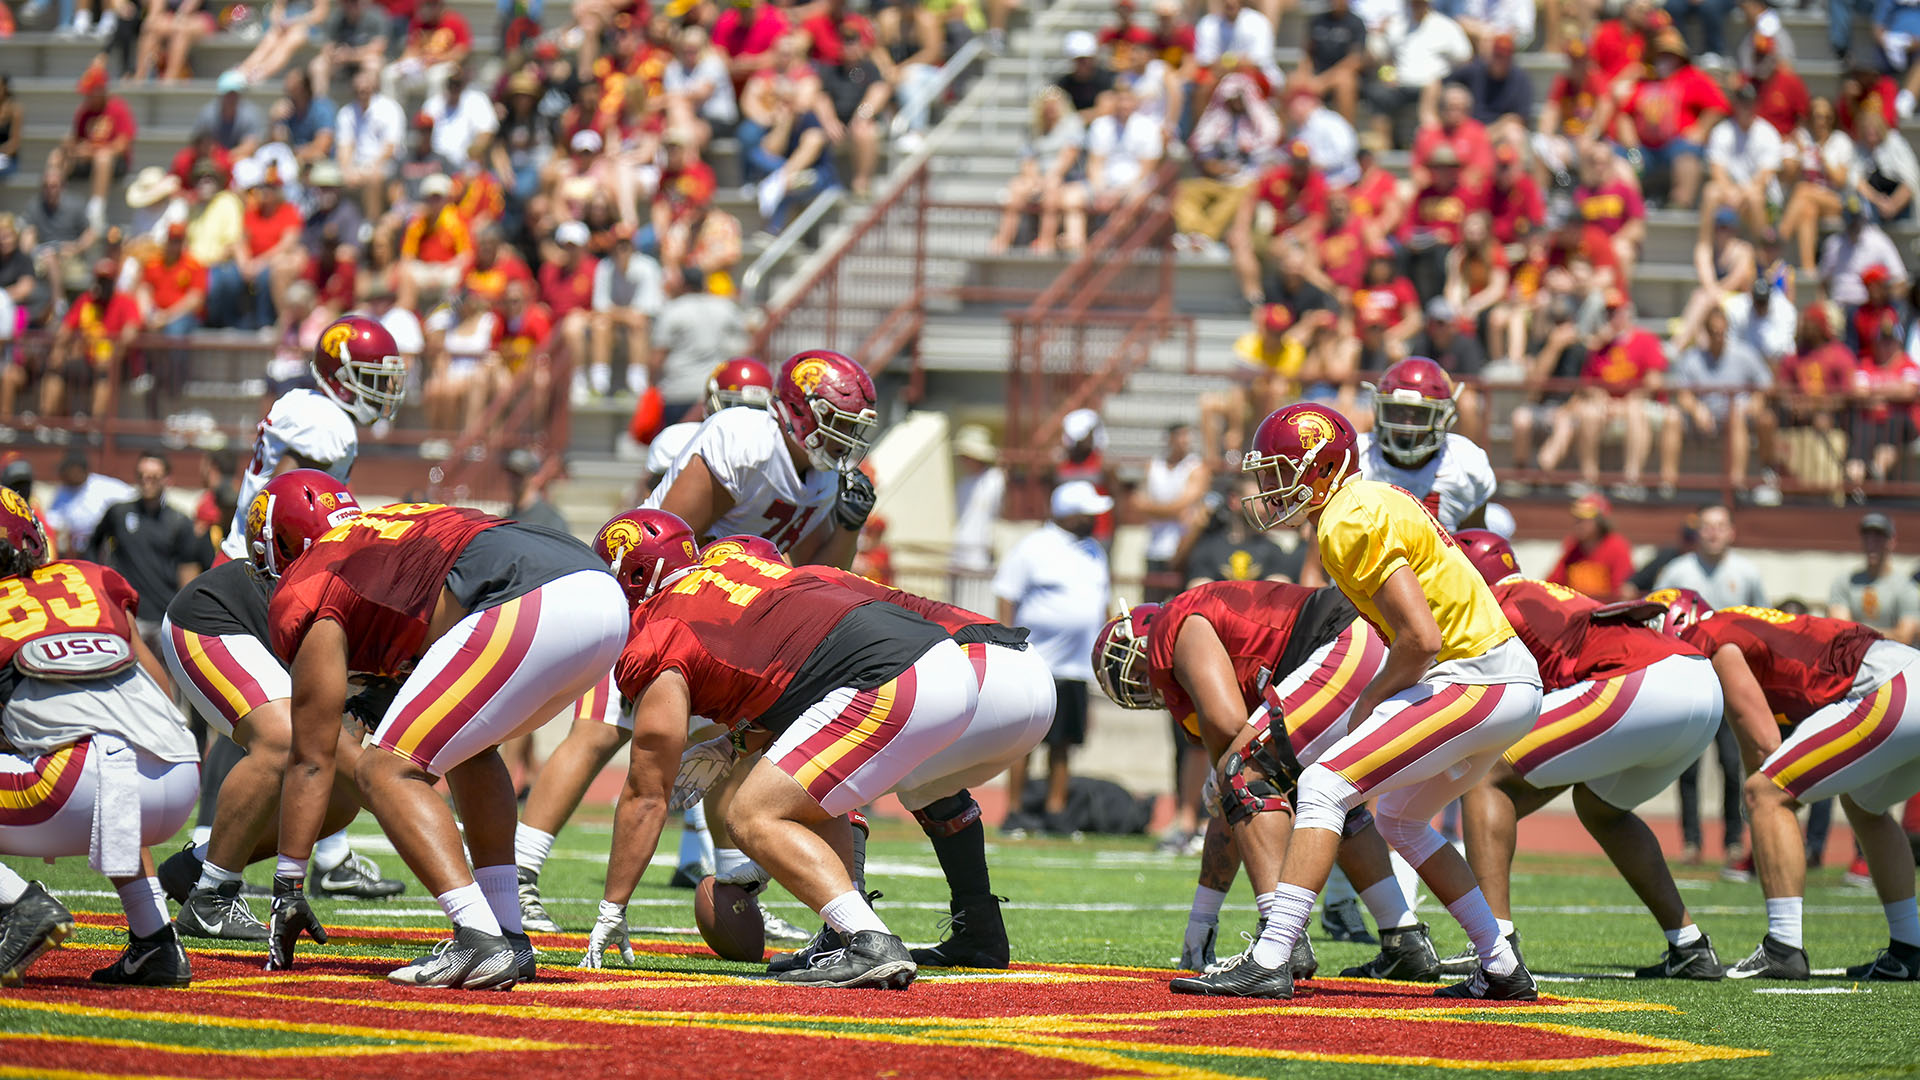 Usc Spring 2019 Calendar 2019 USC Trojans Spring Football Central   USC Athletics